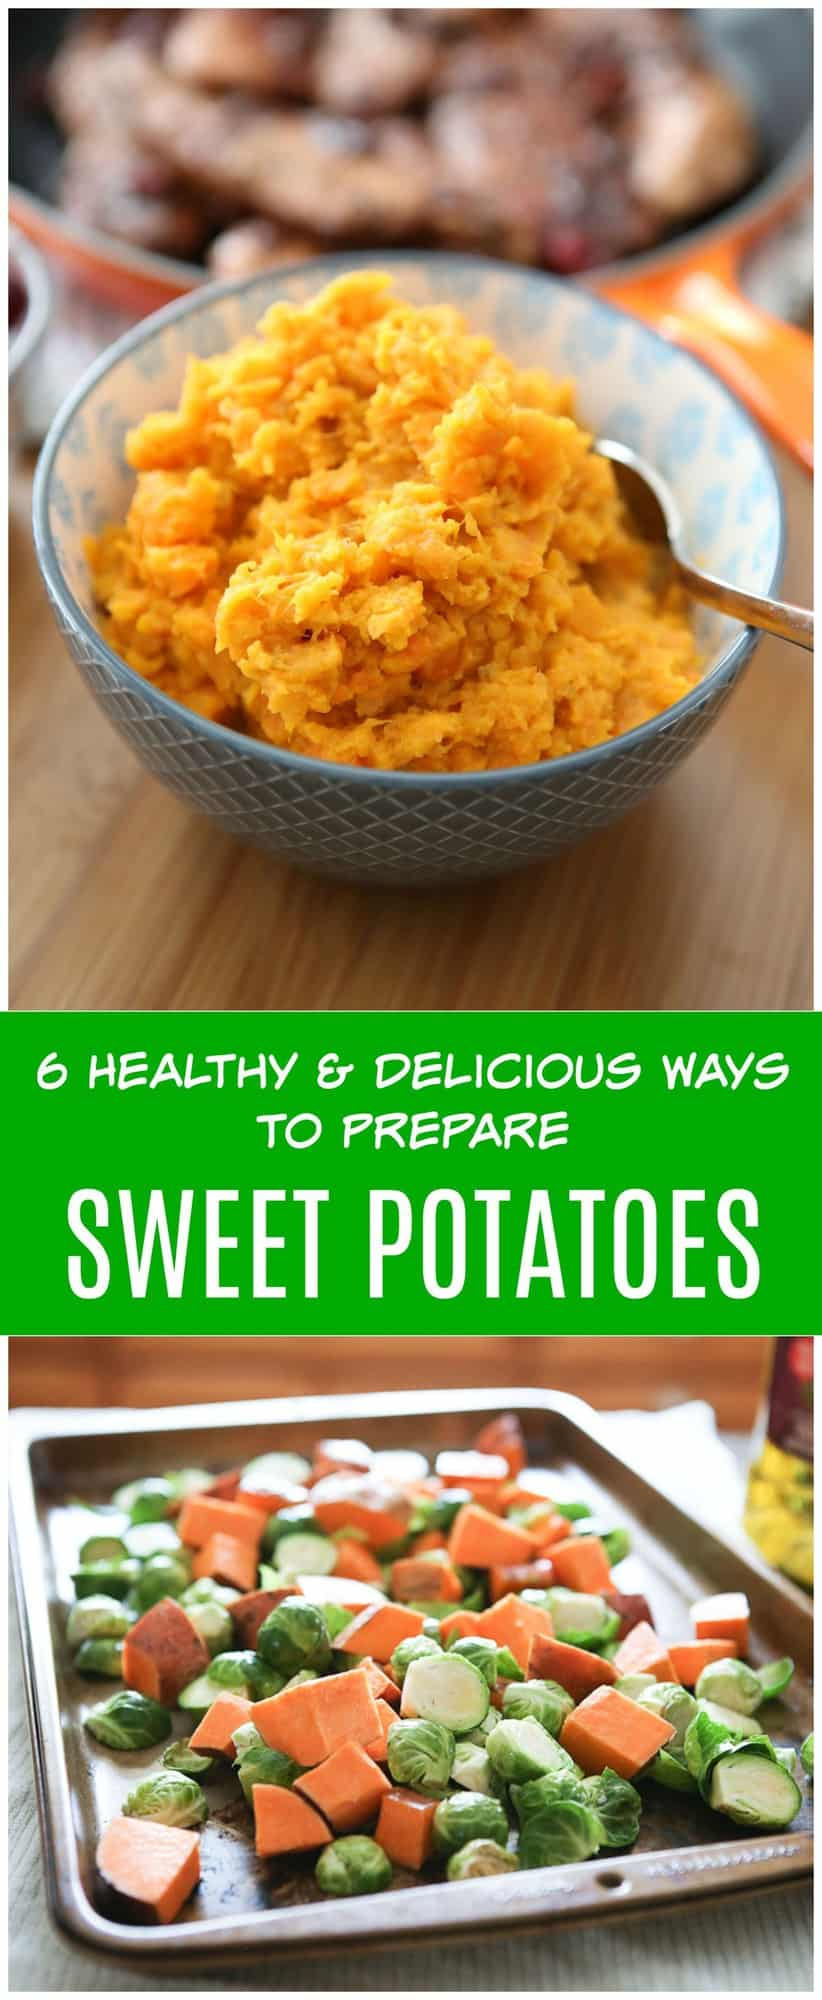 6 Healthy and Delicious Ways To Prepare Sweet Potatoes